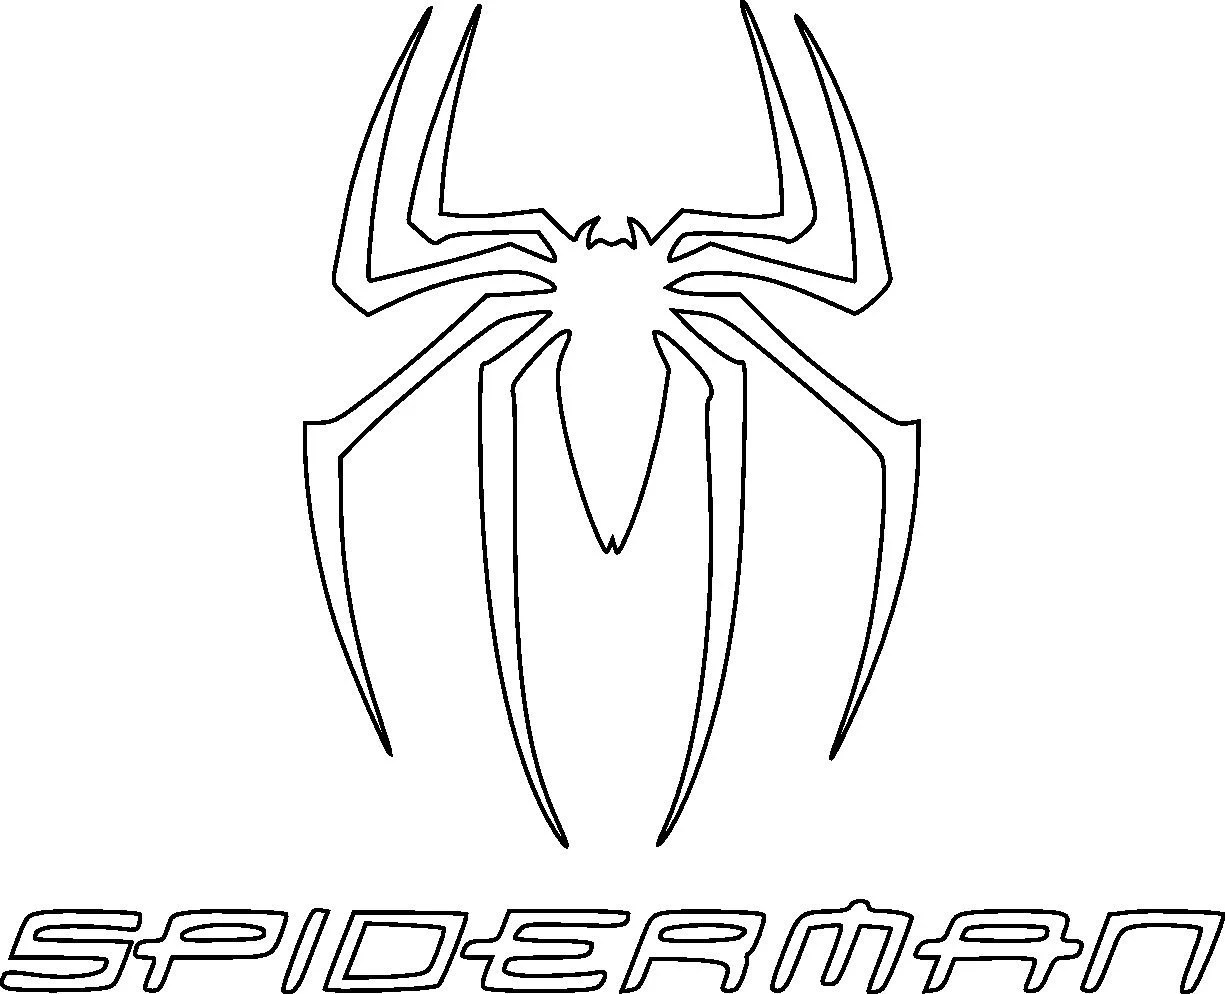 Spiderman SVG, spiderman sihouette, Vector files for